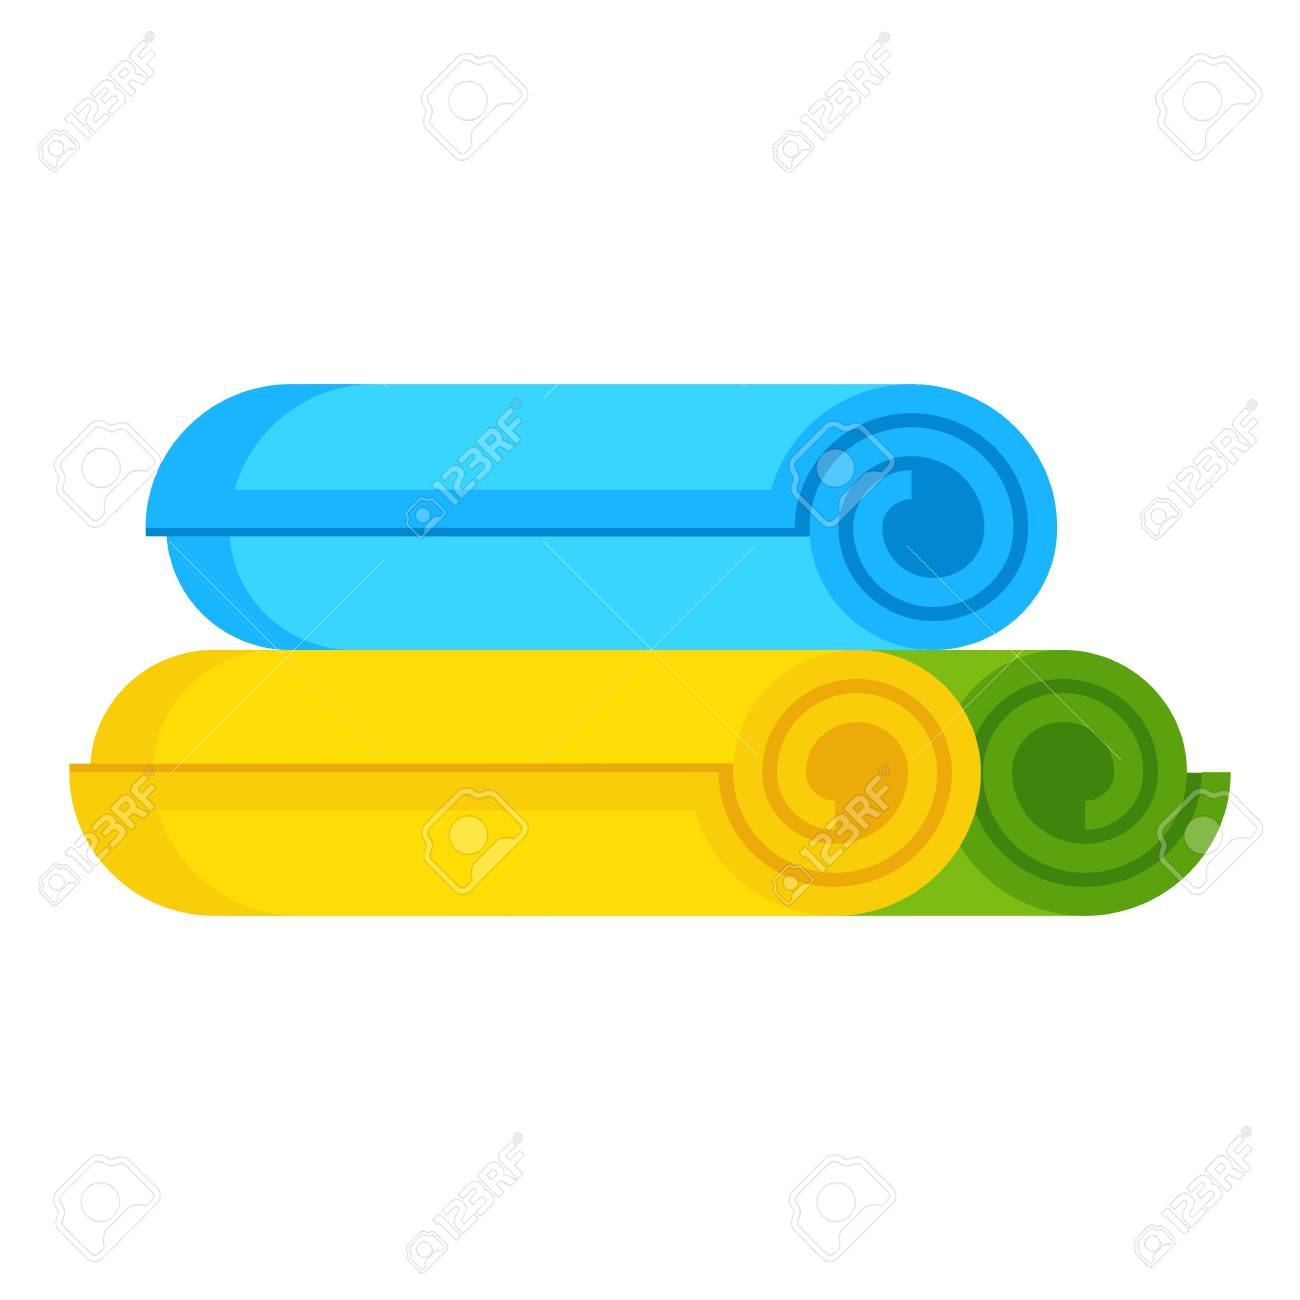 Set of rolled up colored towels. Hygiene, spa and fitness, swimming..